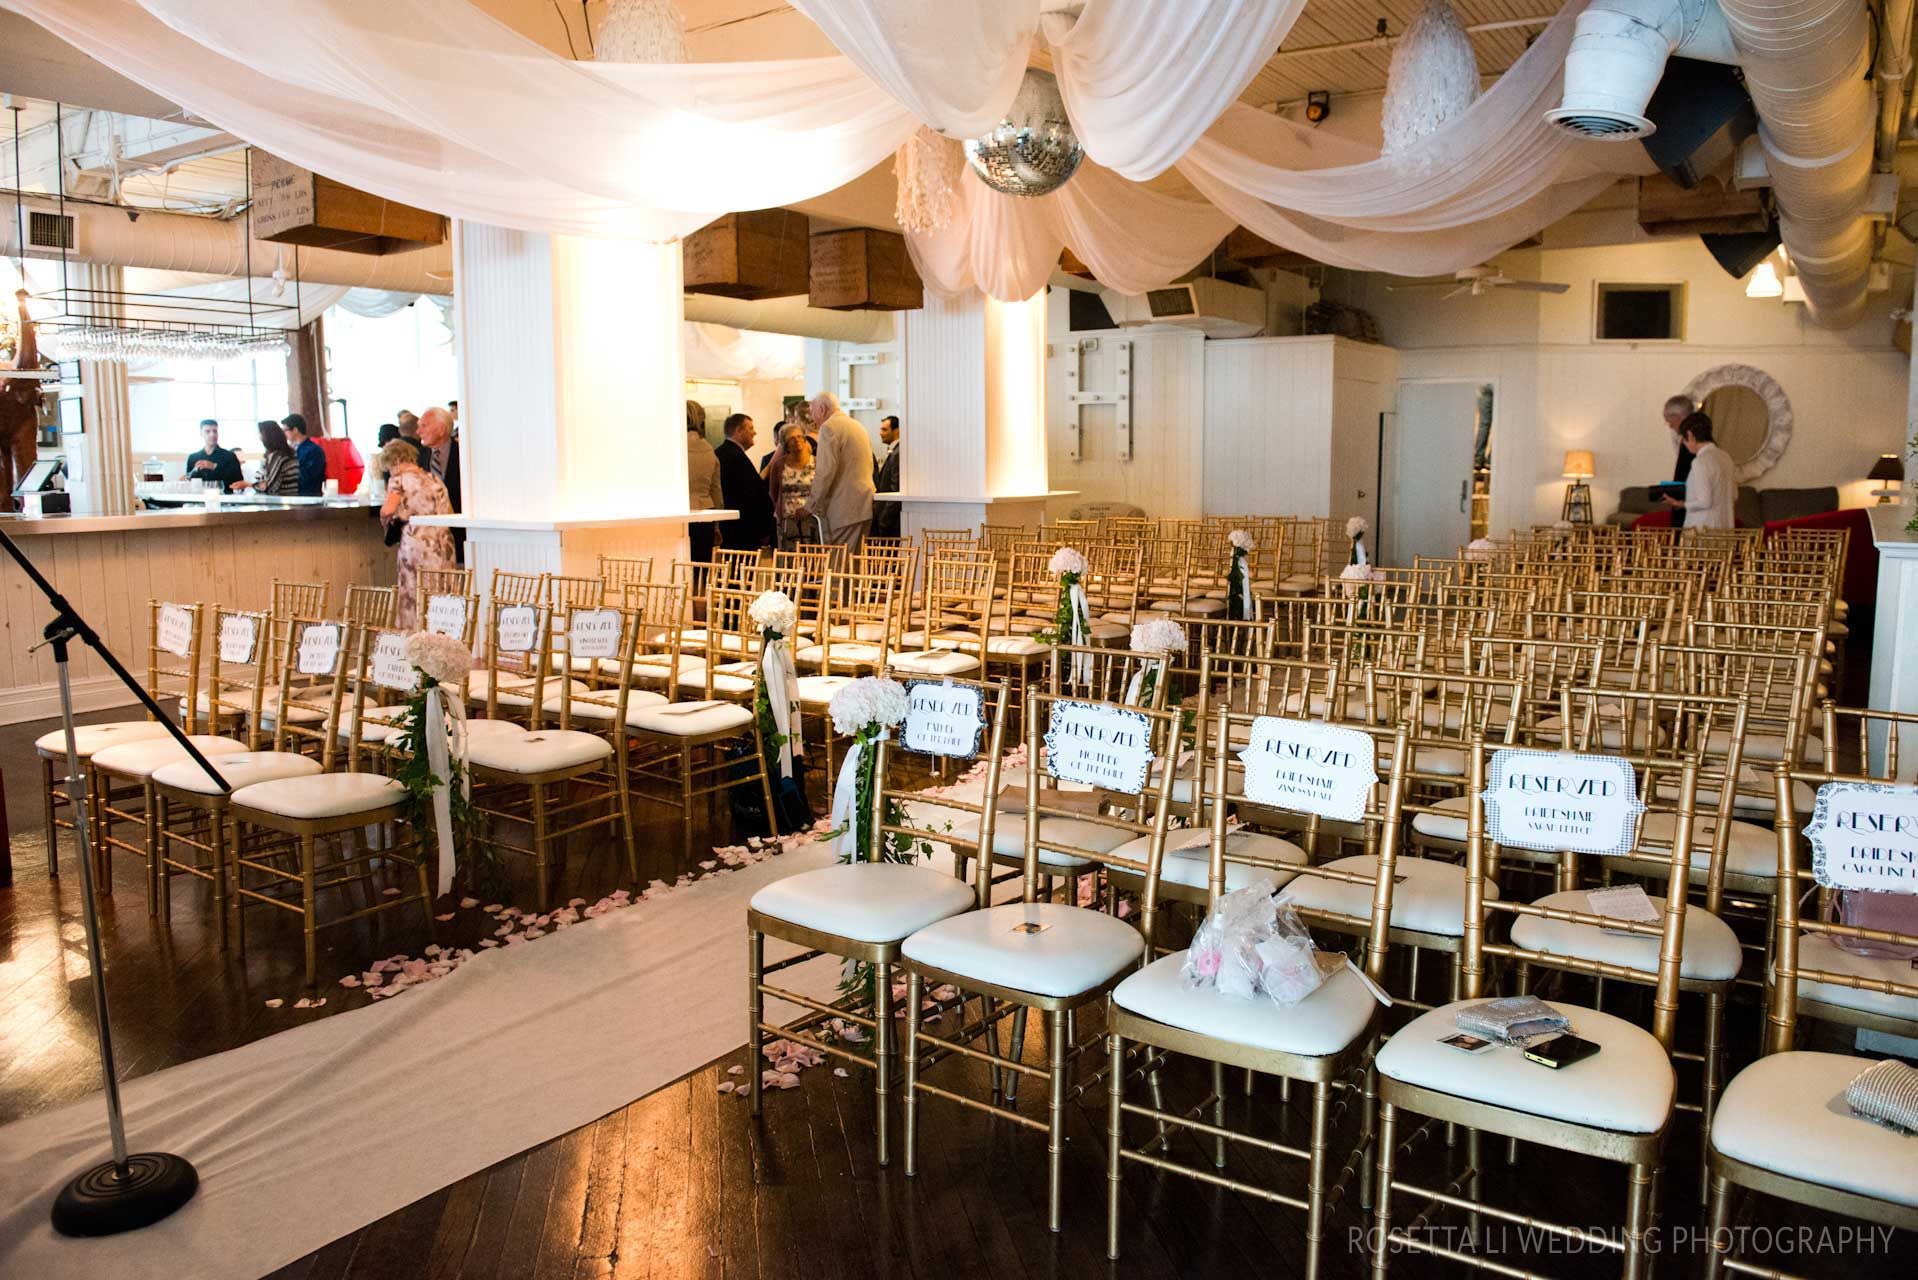 Wedding Venues Toronto - Wedding Ceremony - Chiavari Chairs - Urban Loft